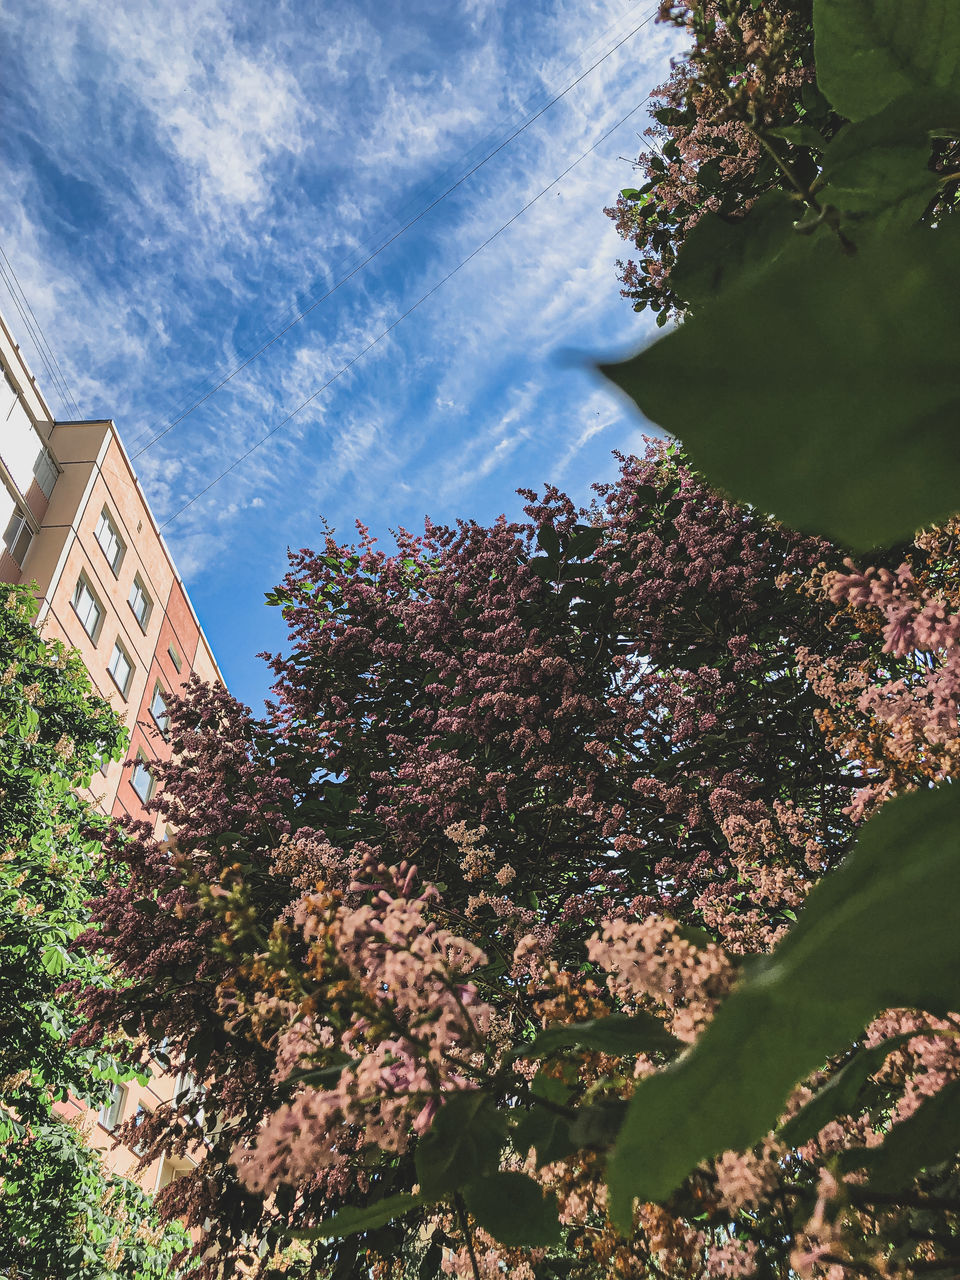 LOW ANGLE VIEW OF FLOWERING PLANT AGAINST BUILDING